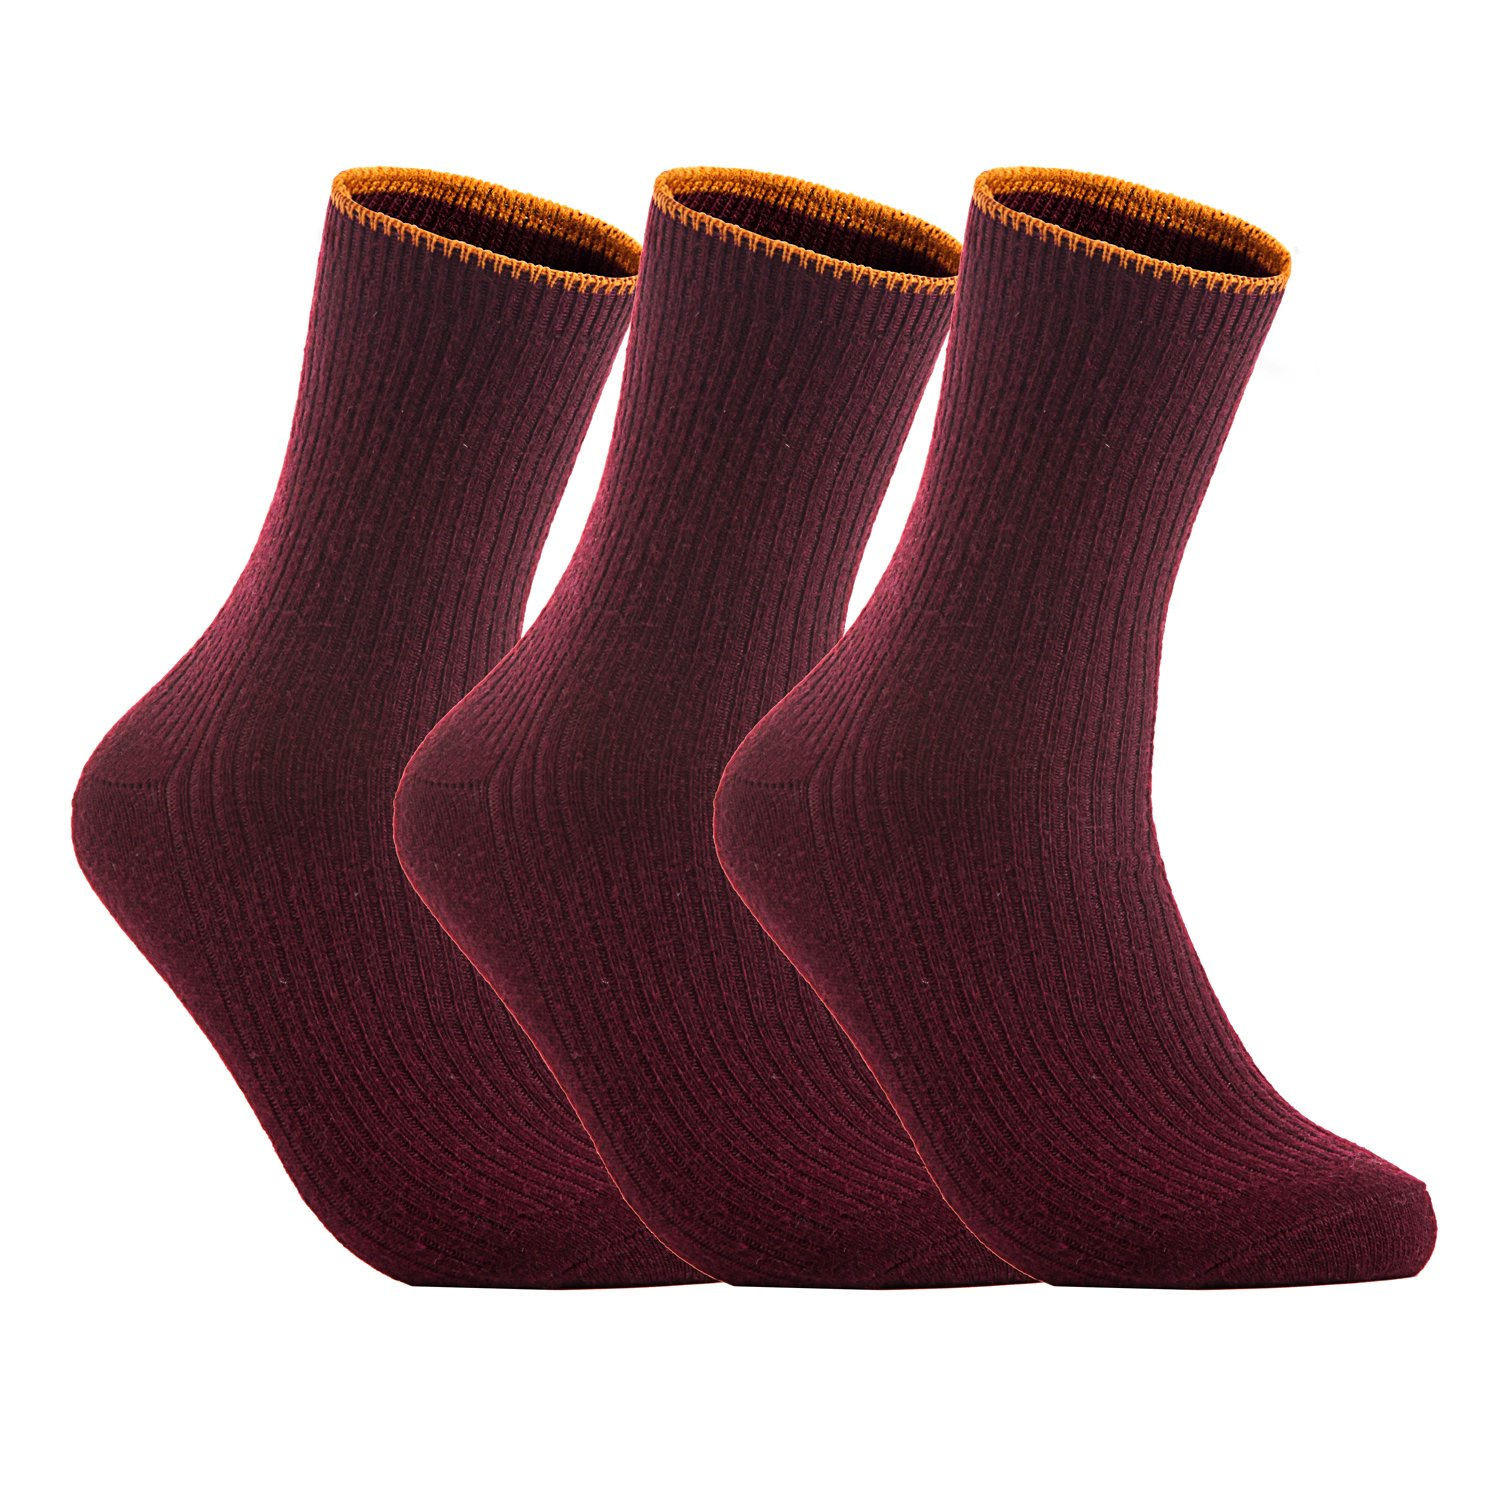 Lian LifeStyle Big Girl's 3 Pairs Wool Blend Crew Socks Solid HR1612 Size L/XL Wine